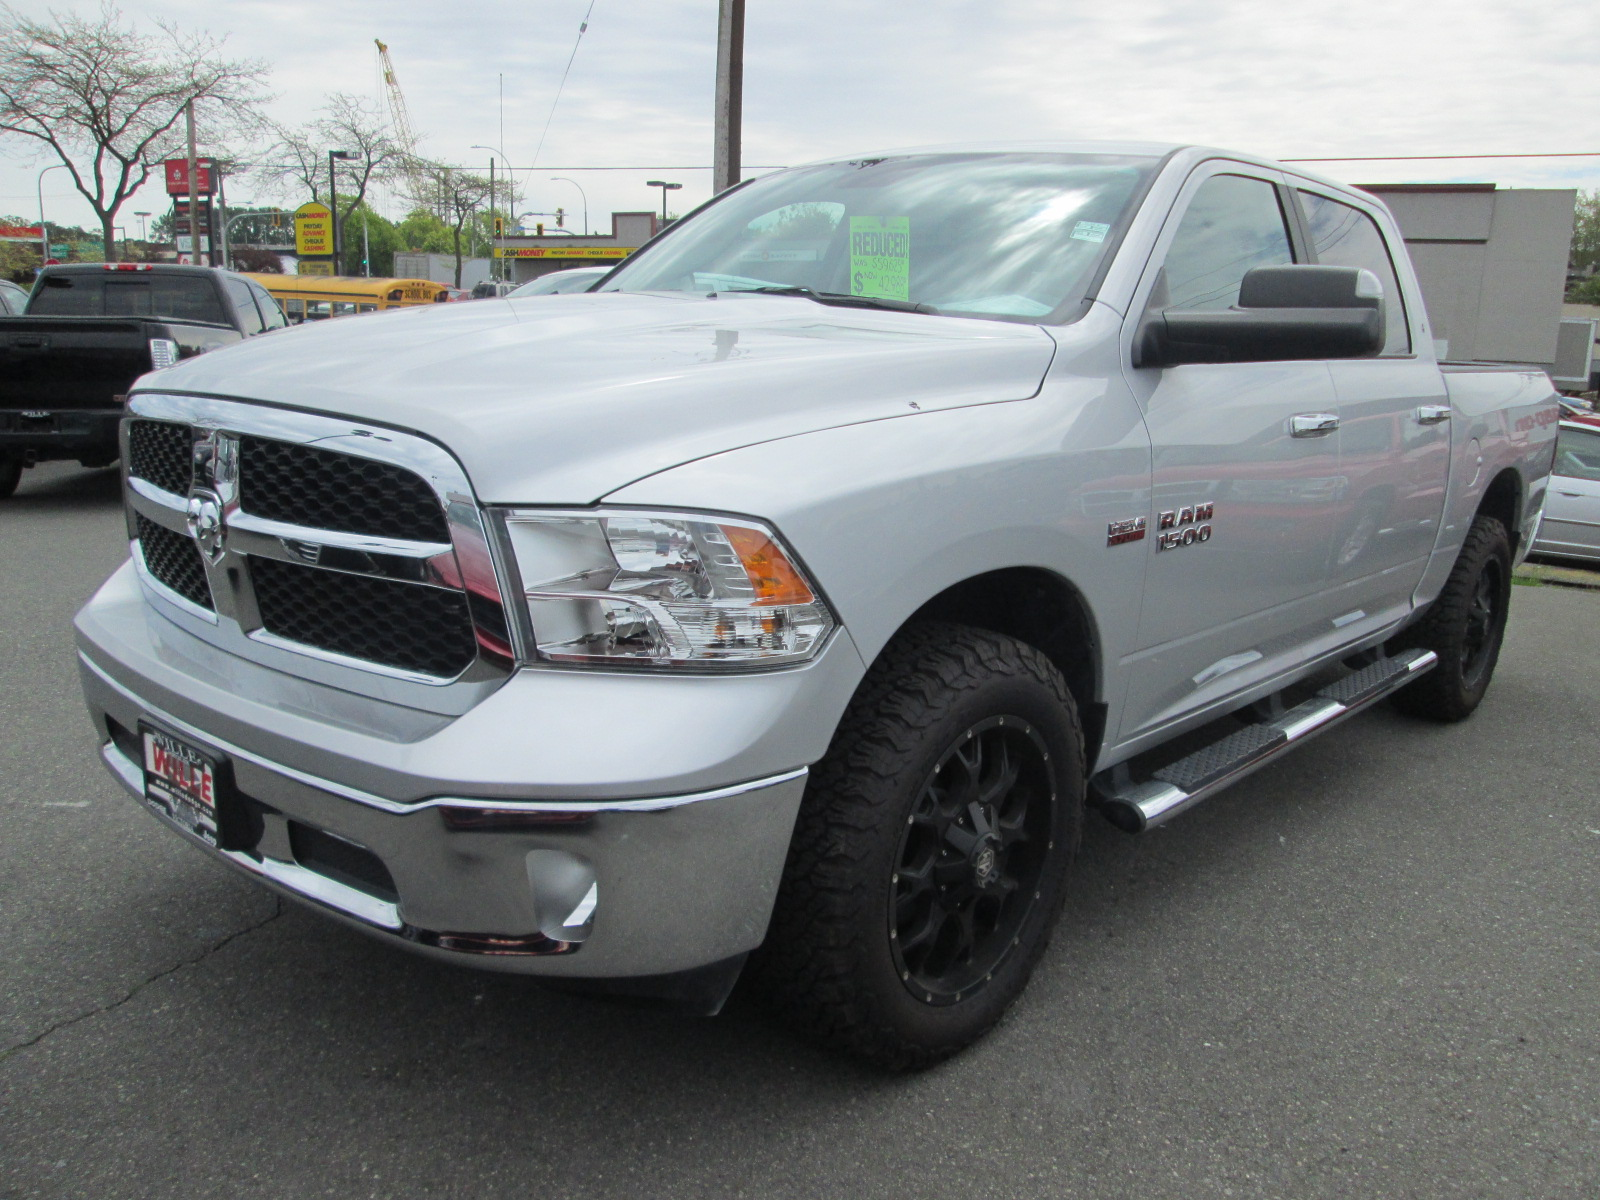 automatic in trim vehicles sale dealers up bay new pick select for thunder ram dodge img lakehead st large motors